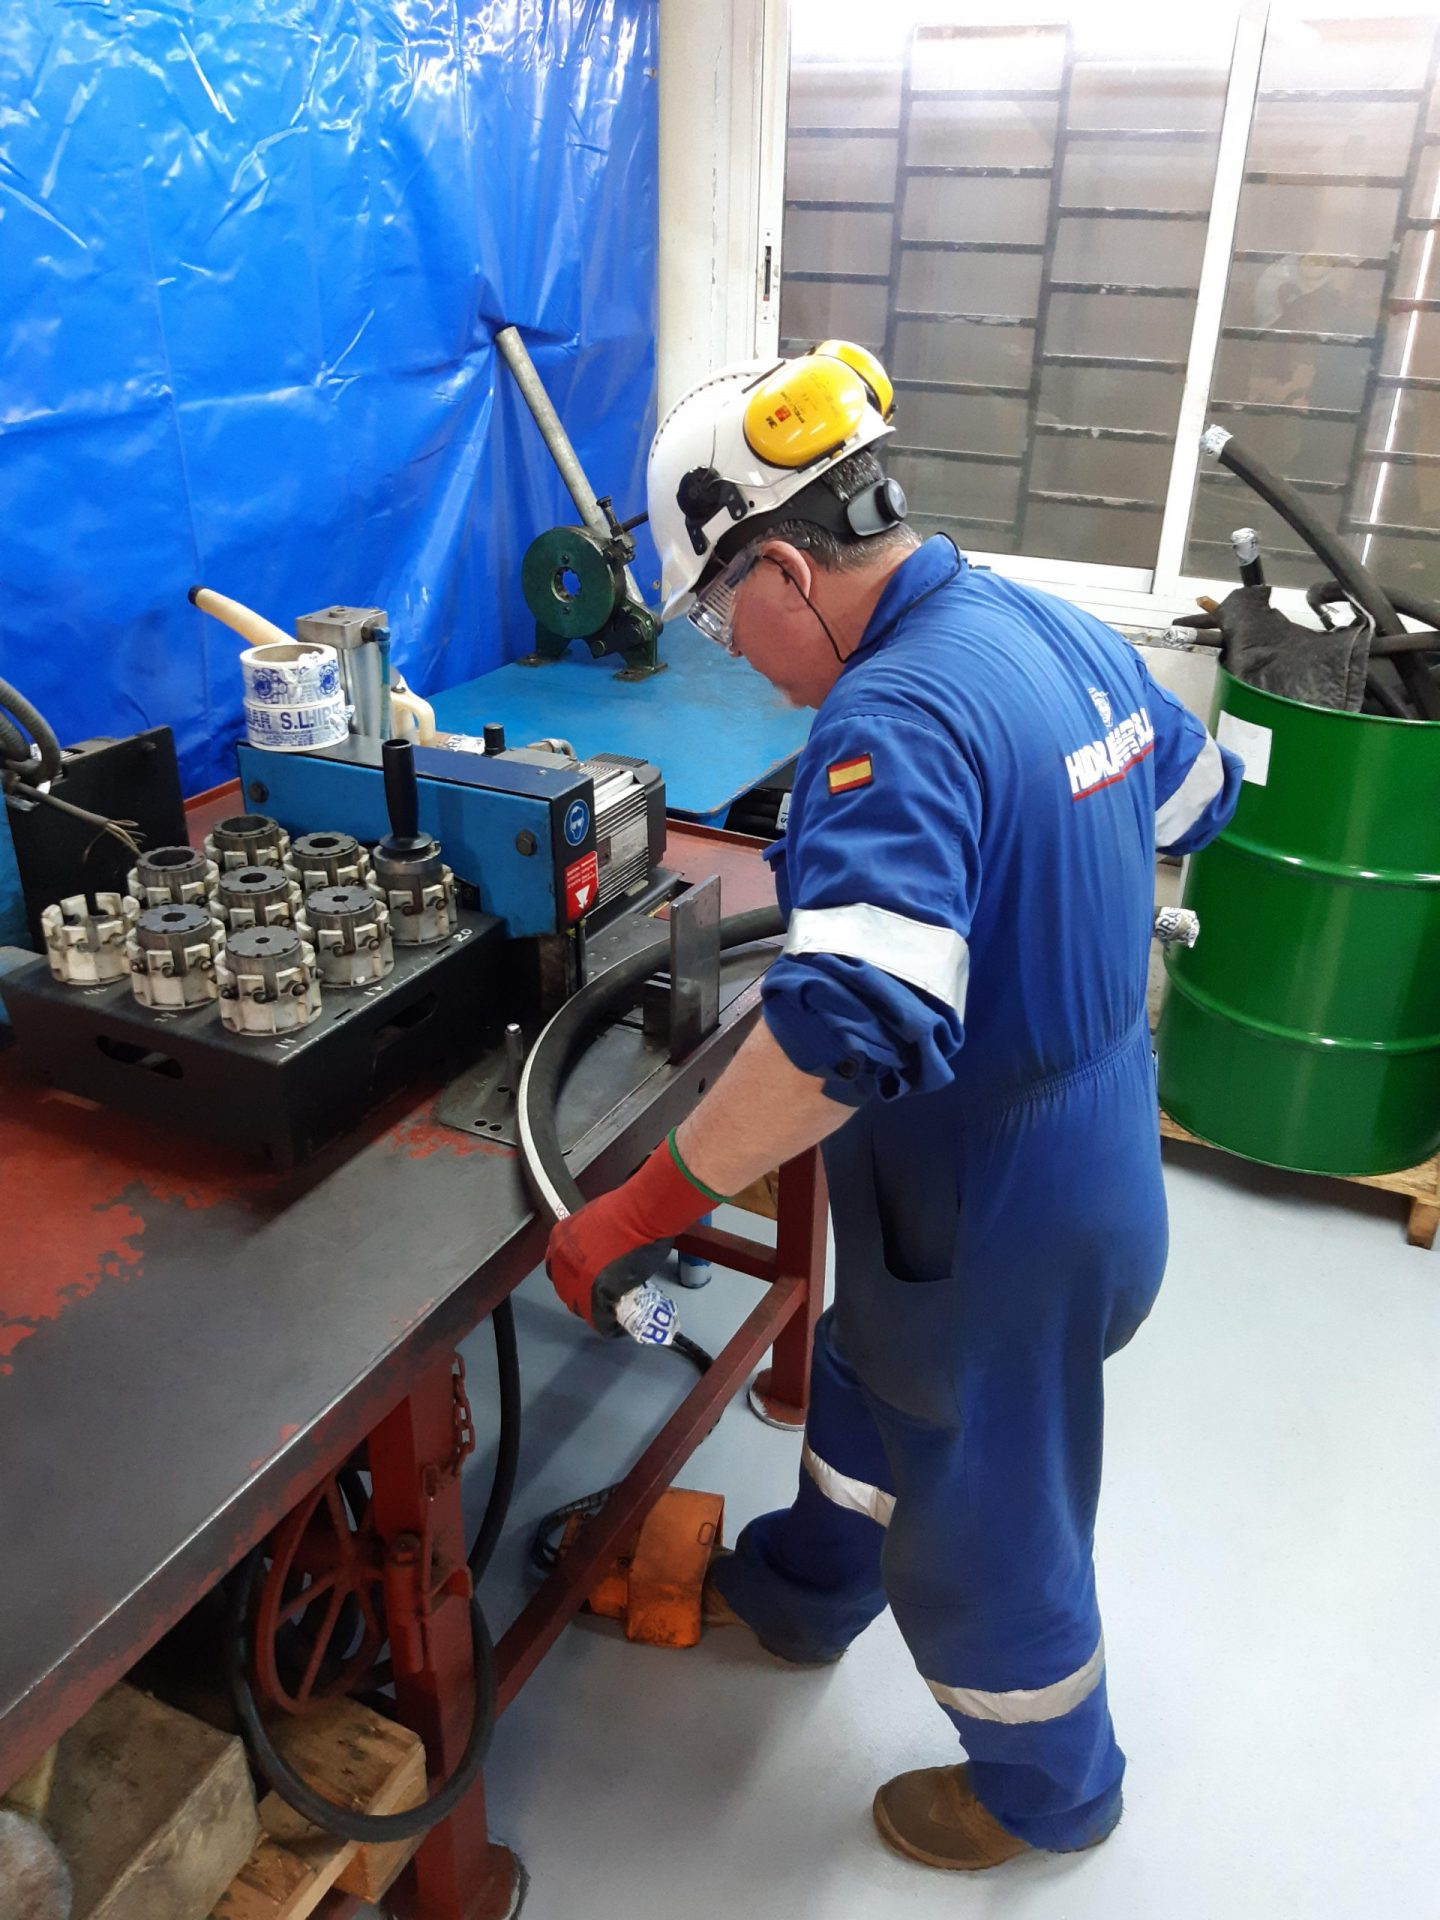 HYDRAULIC HOSE FABRICATION